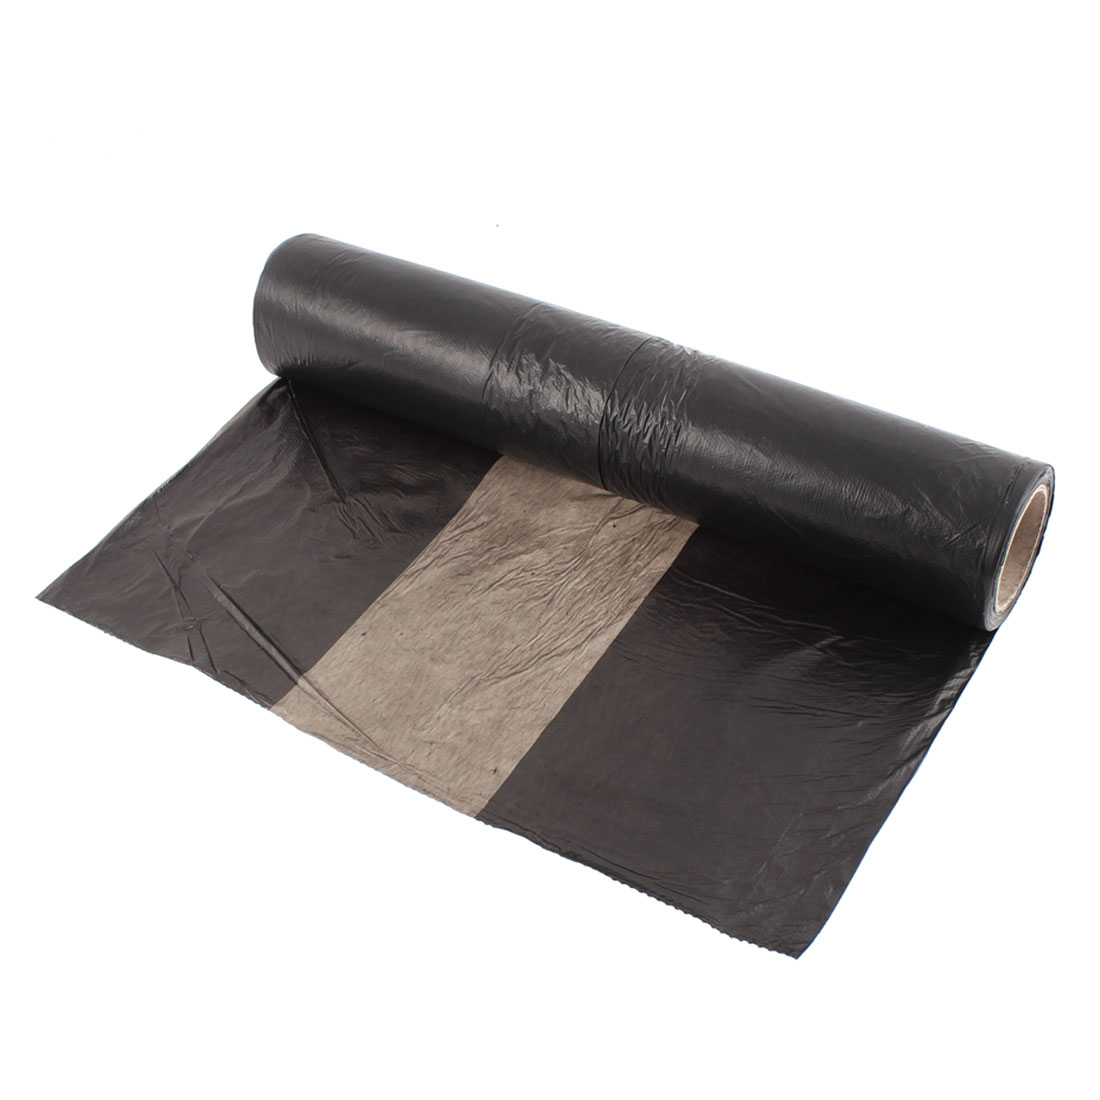 Household Disposable Rubbish Garbage Trash Waste Bag Roll 60cm x 57cm